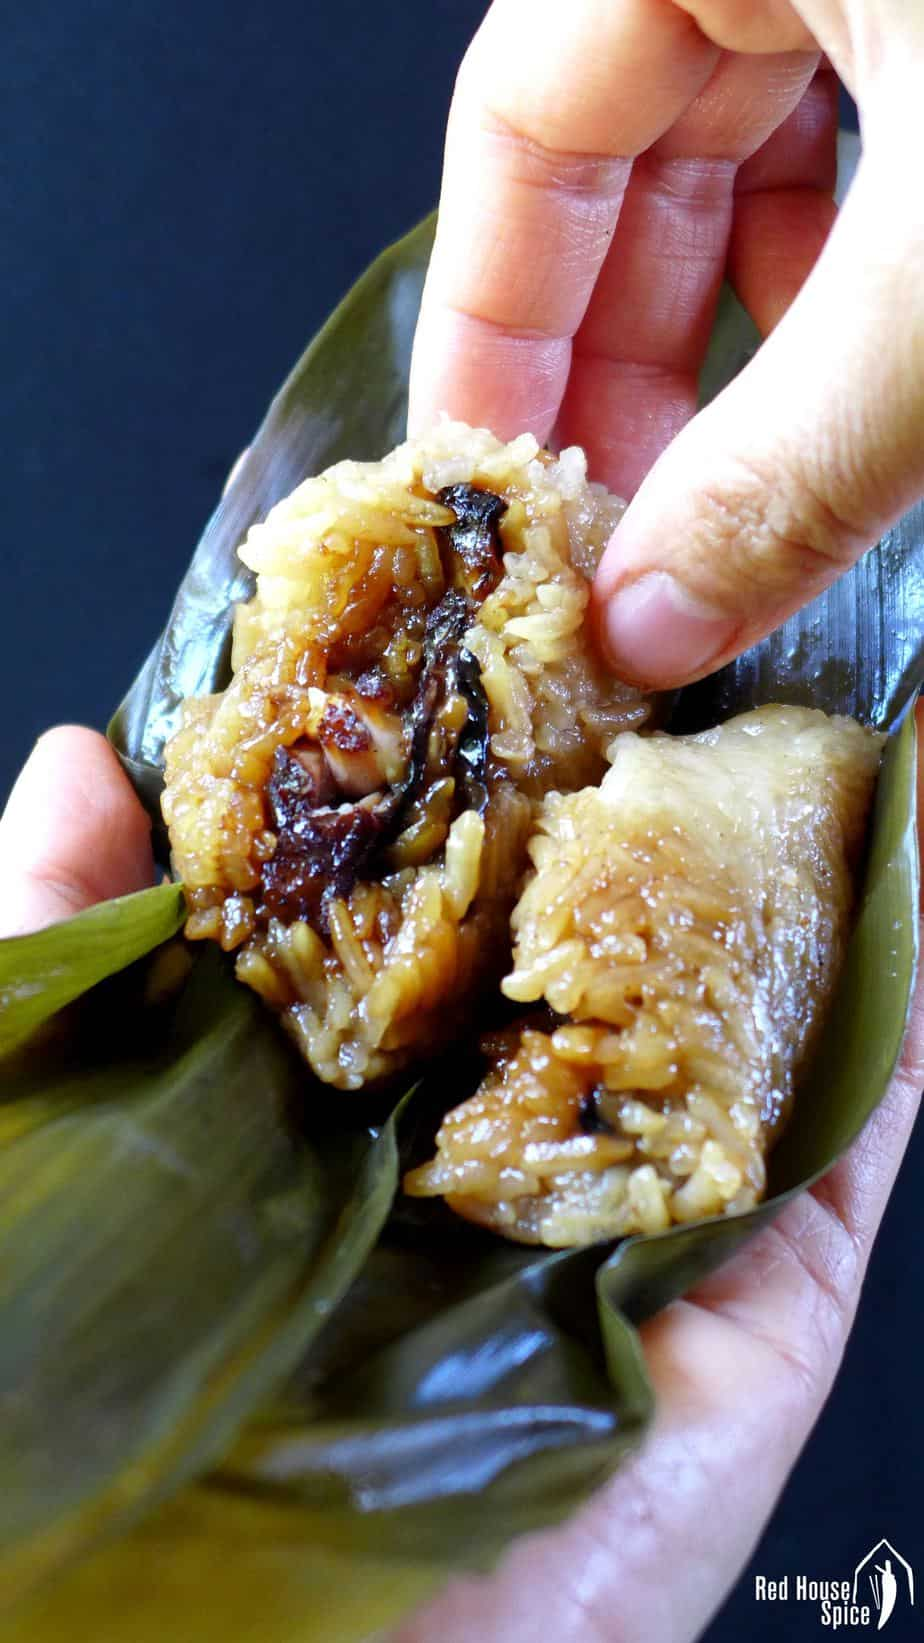 A unwrapped sticky rice dumpling filled with pork & mushrooms